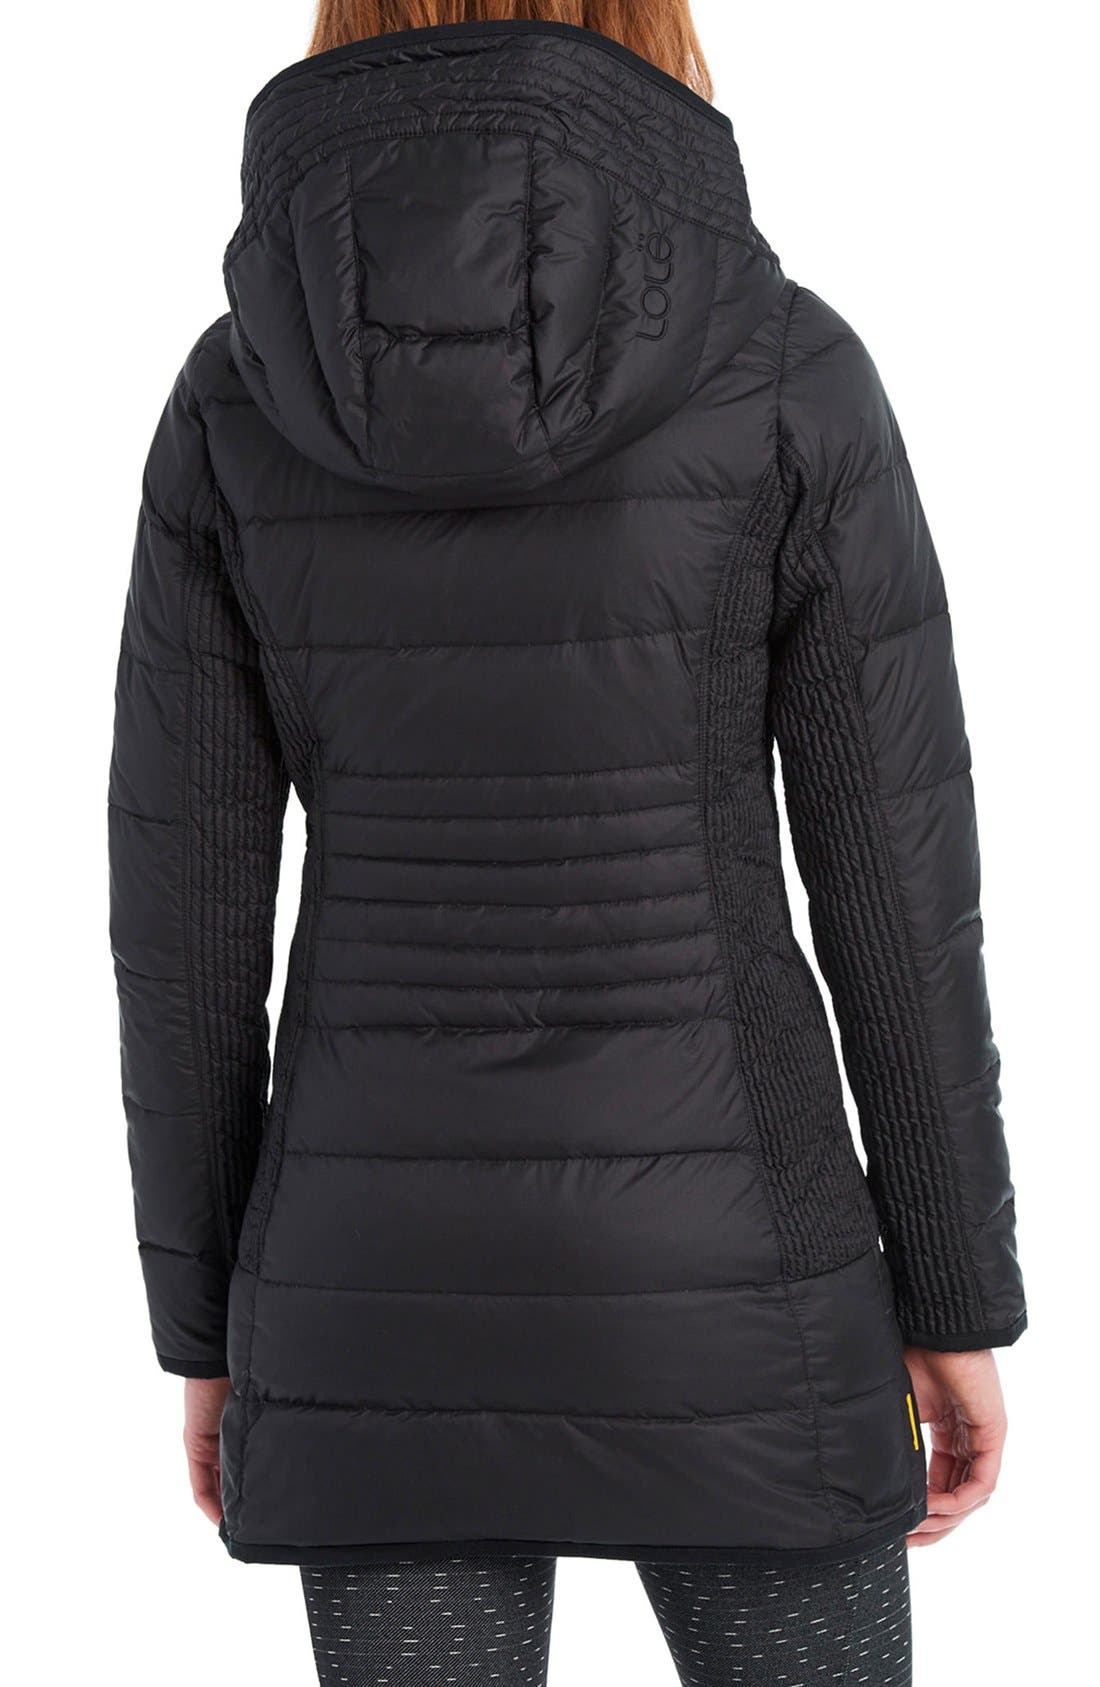 LOLE,                             'Gisele' Water Resistant Quilted Jacket,                             Alternate thumbnail 2, color,                             001